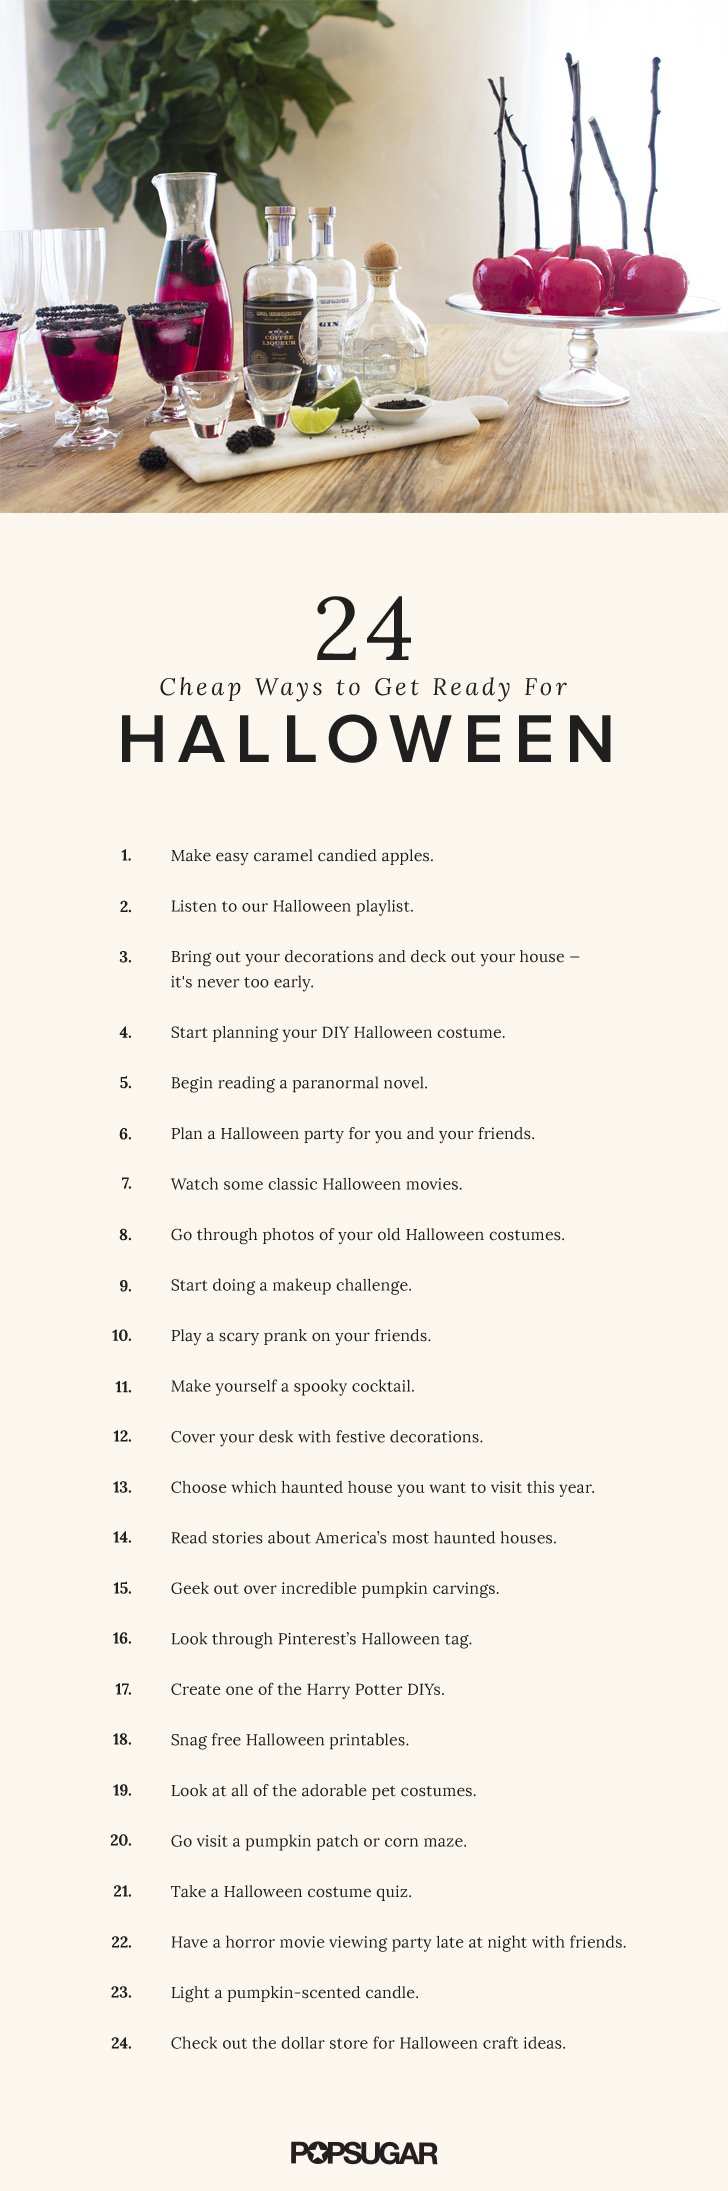 23 Cheap Ways to Get Excited For Halloween Cheap